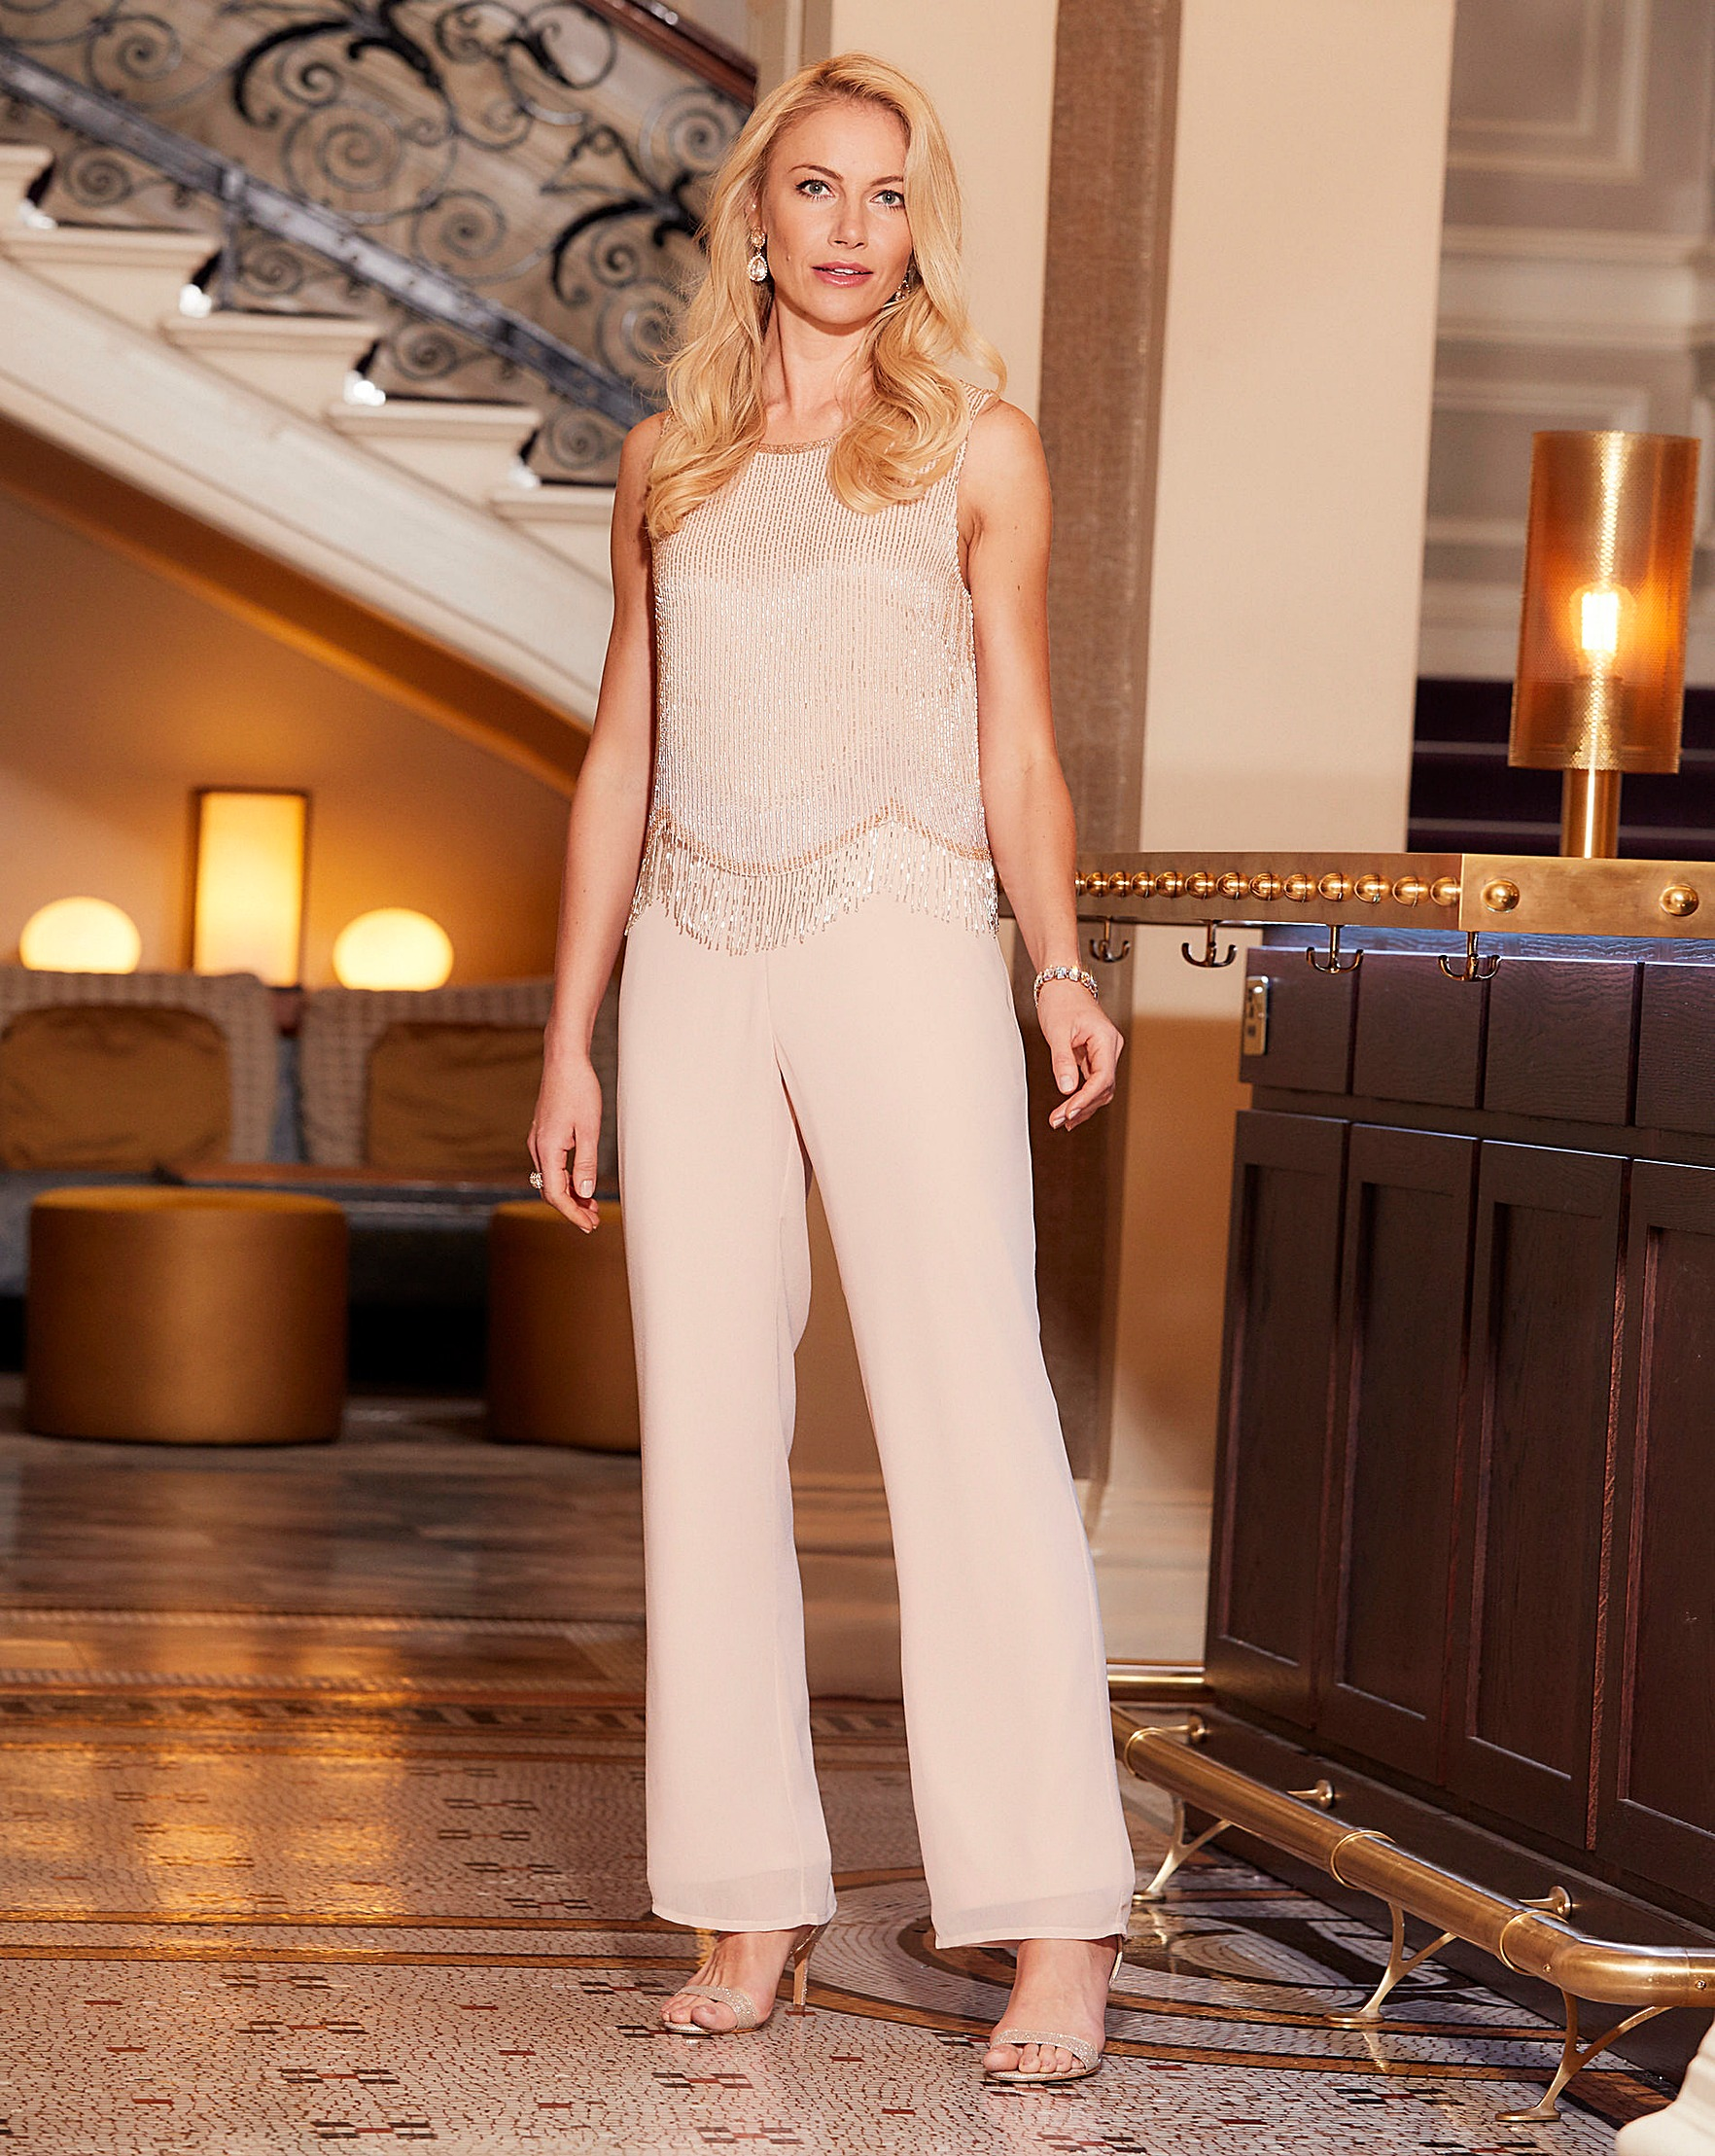 c2228232822 Joanna Hope Petite Beaded Jumpsuit